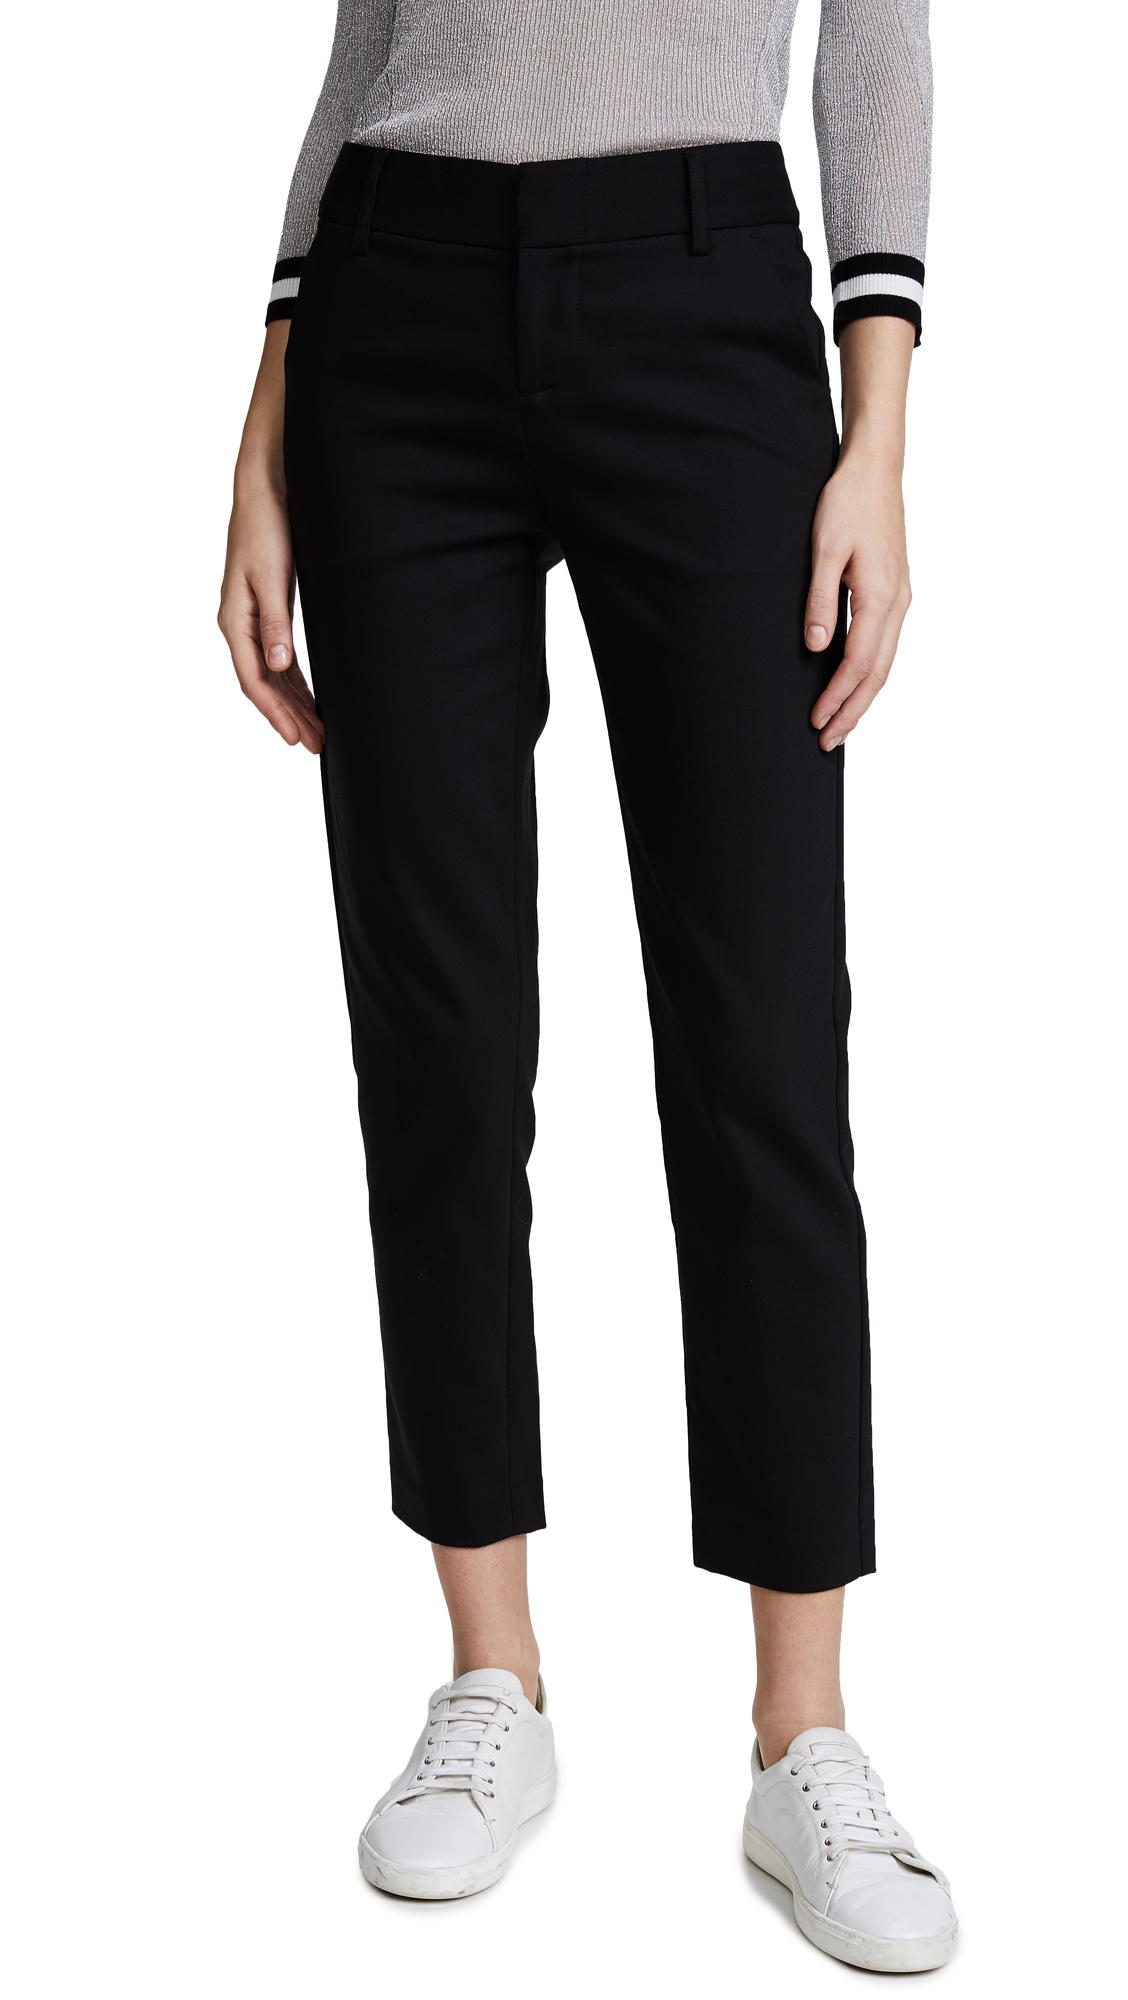 alice + olivia Stacey Slim Pants - Black